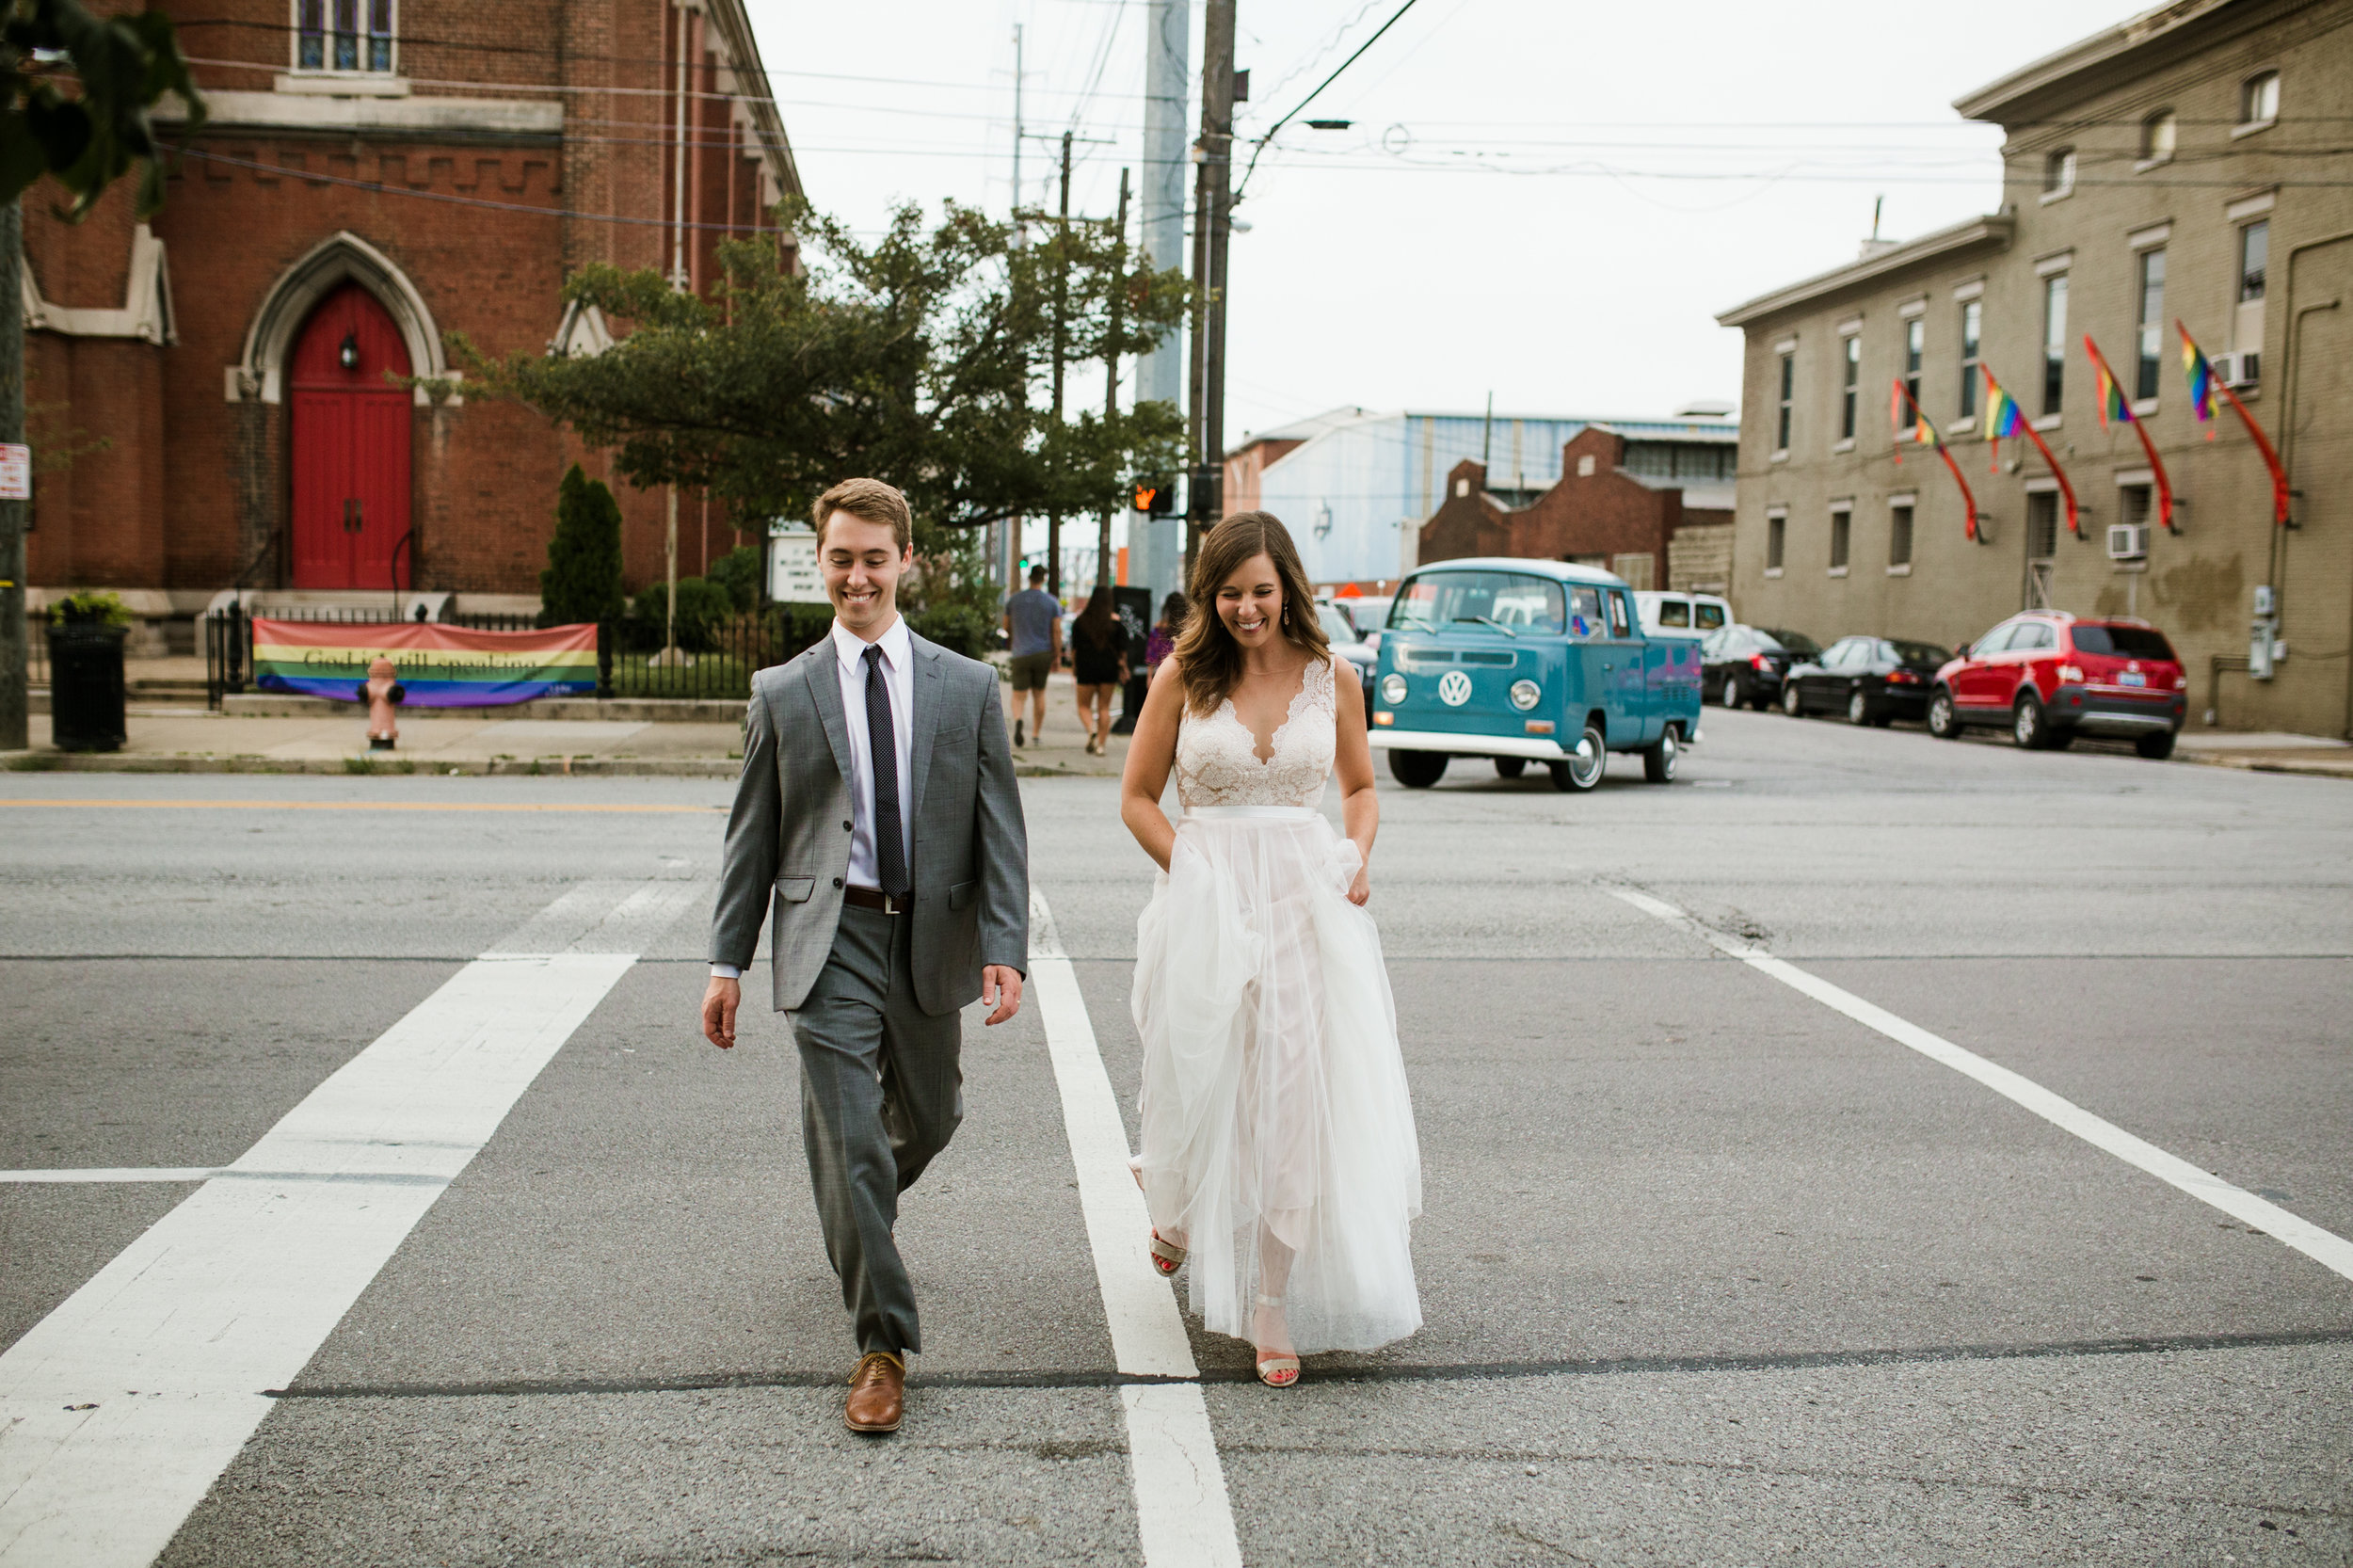 Amanda & Dave Anniversary 2018 Crystal Ludwick Photo Louisville Wedding Photographer Kentucky Wedding Photographer (30 of 43).jpg